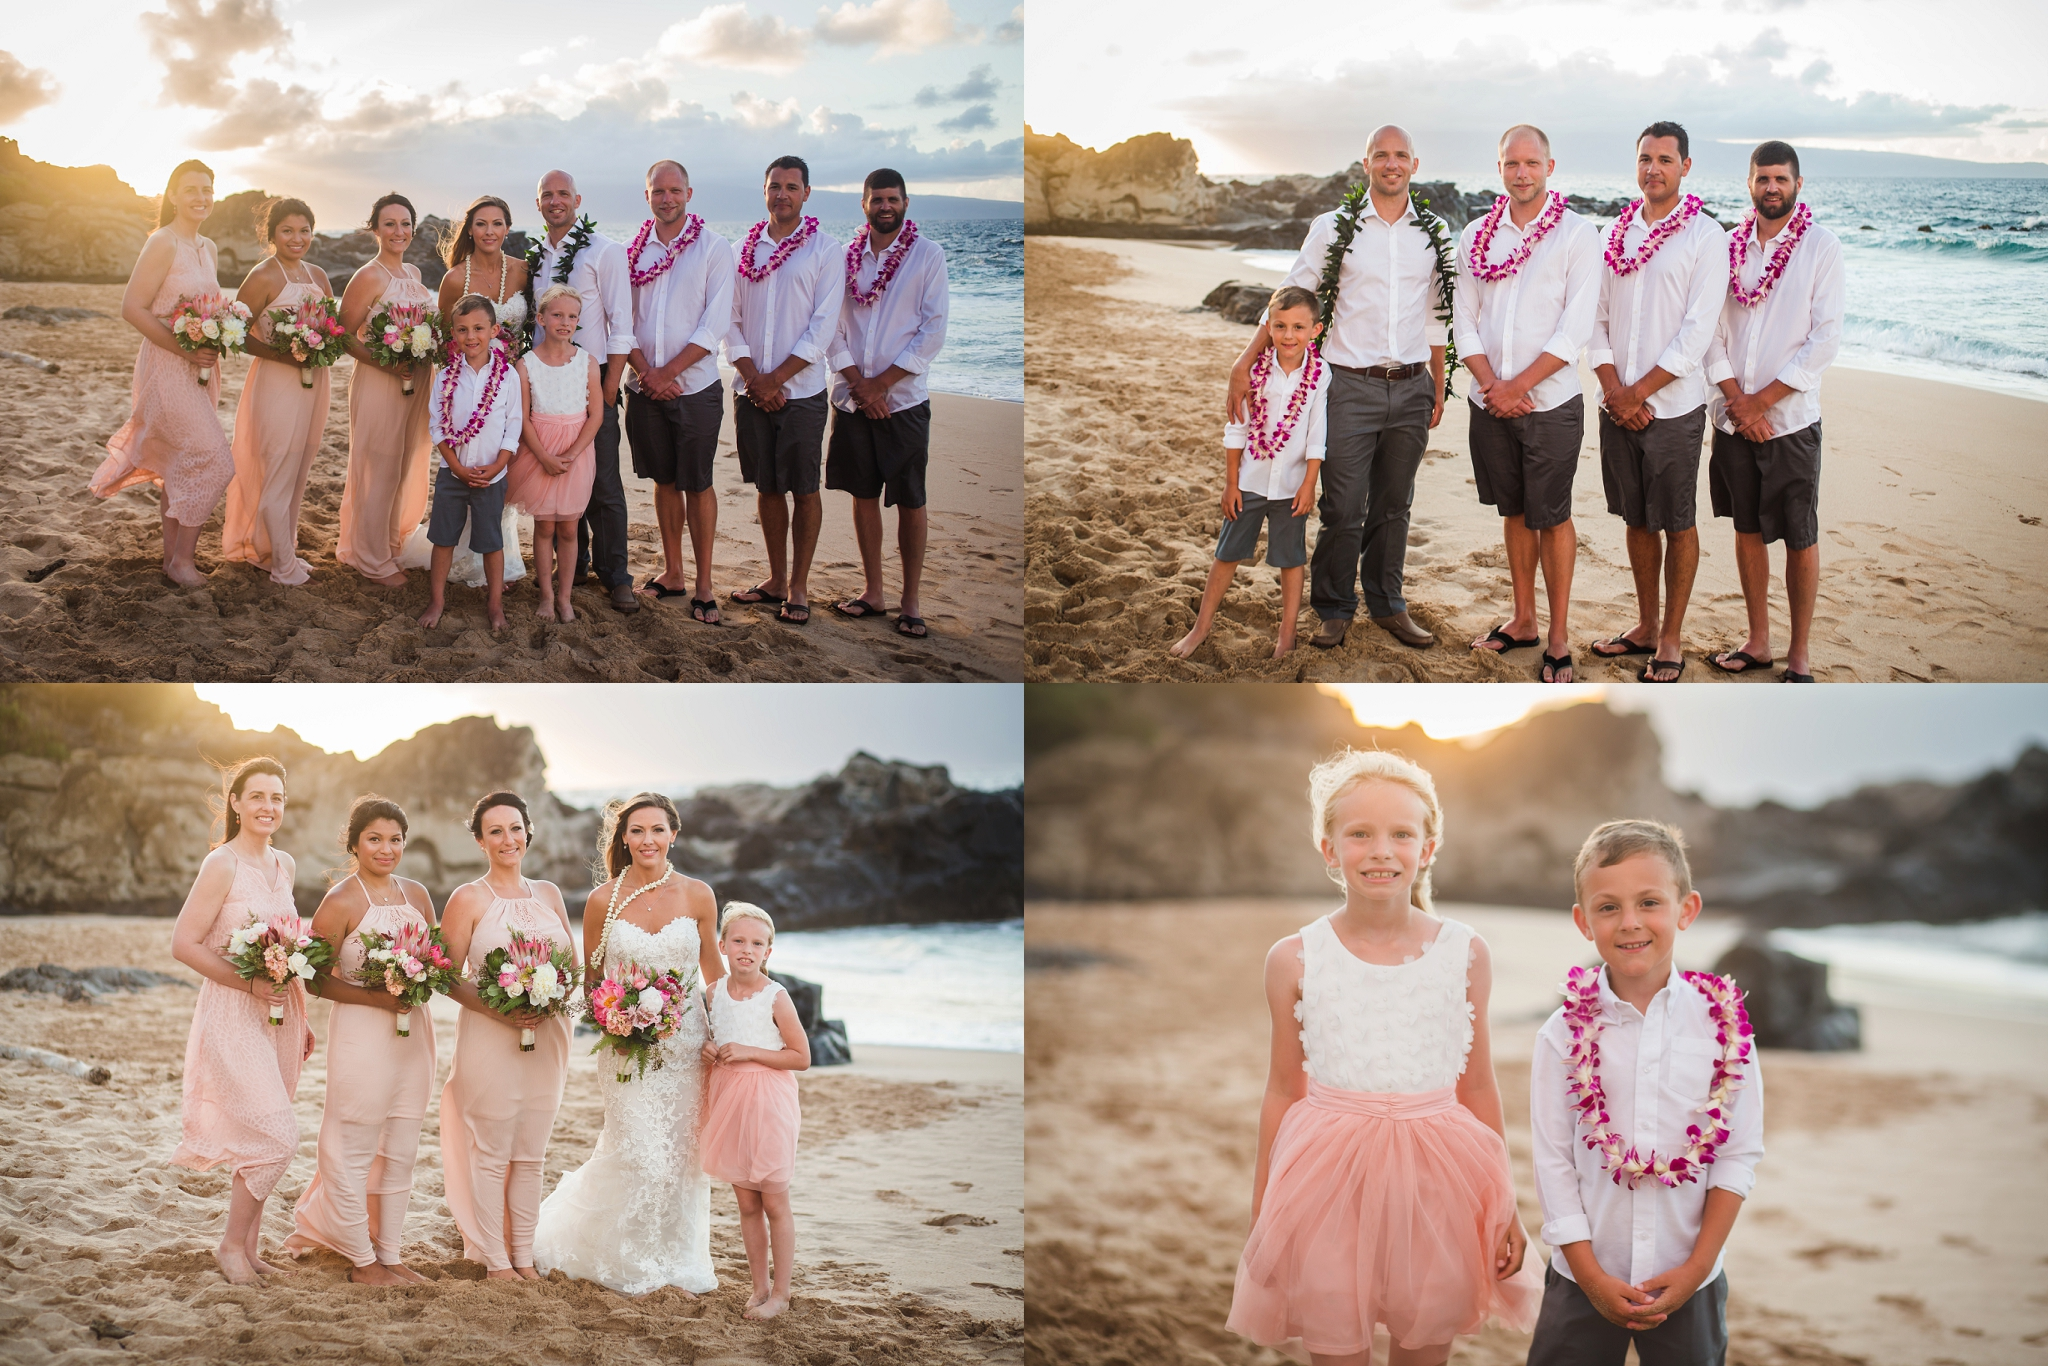 Maui_wedding_photographer_hawaii_destination_vannessa_kralovic (3).jpg